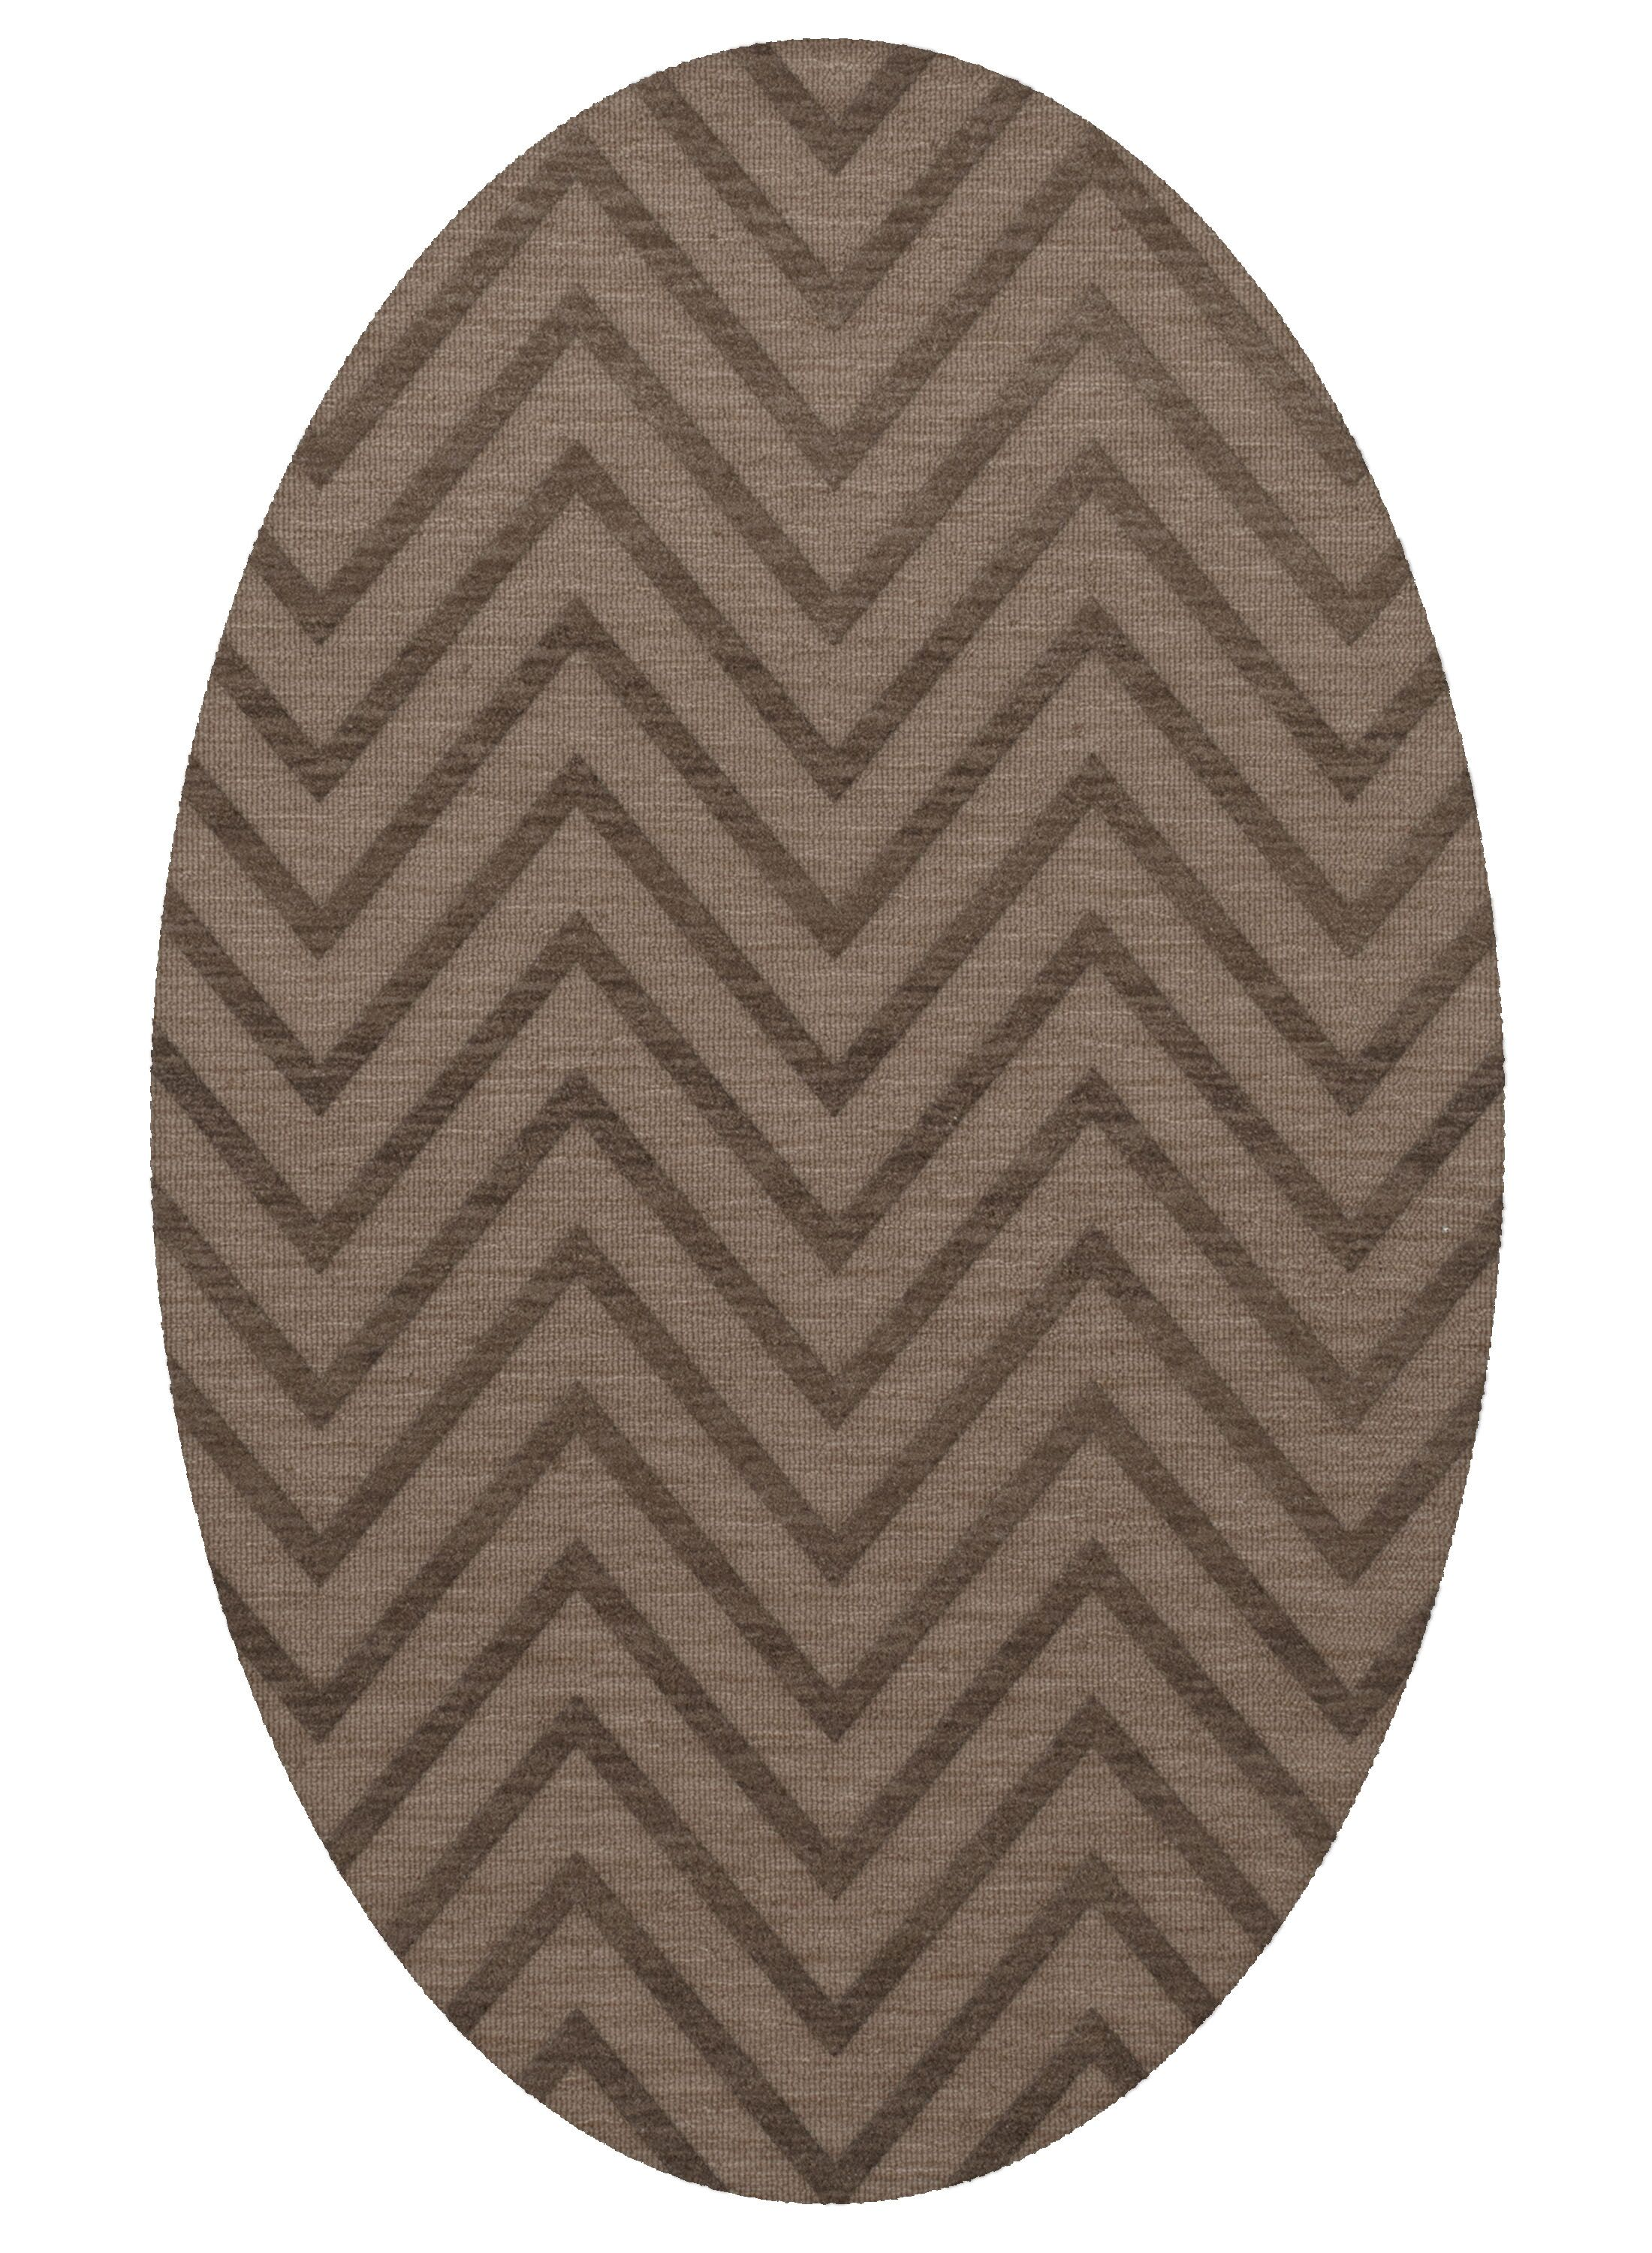 Dover Stone Area Rug Rug Size: Oval 9' x 12'